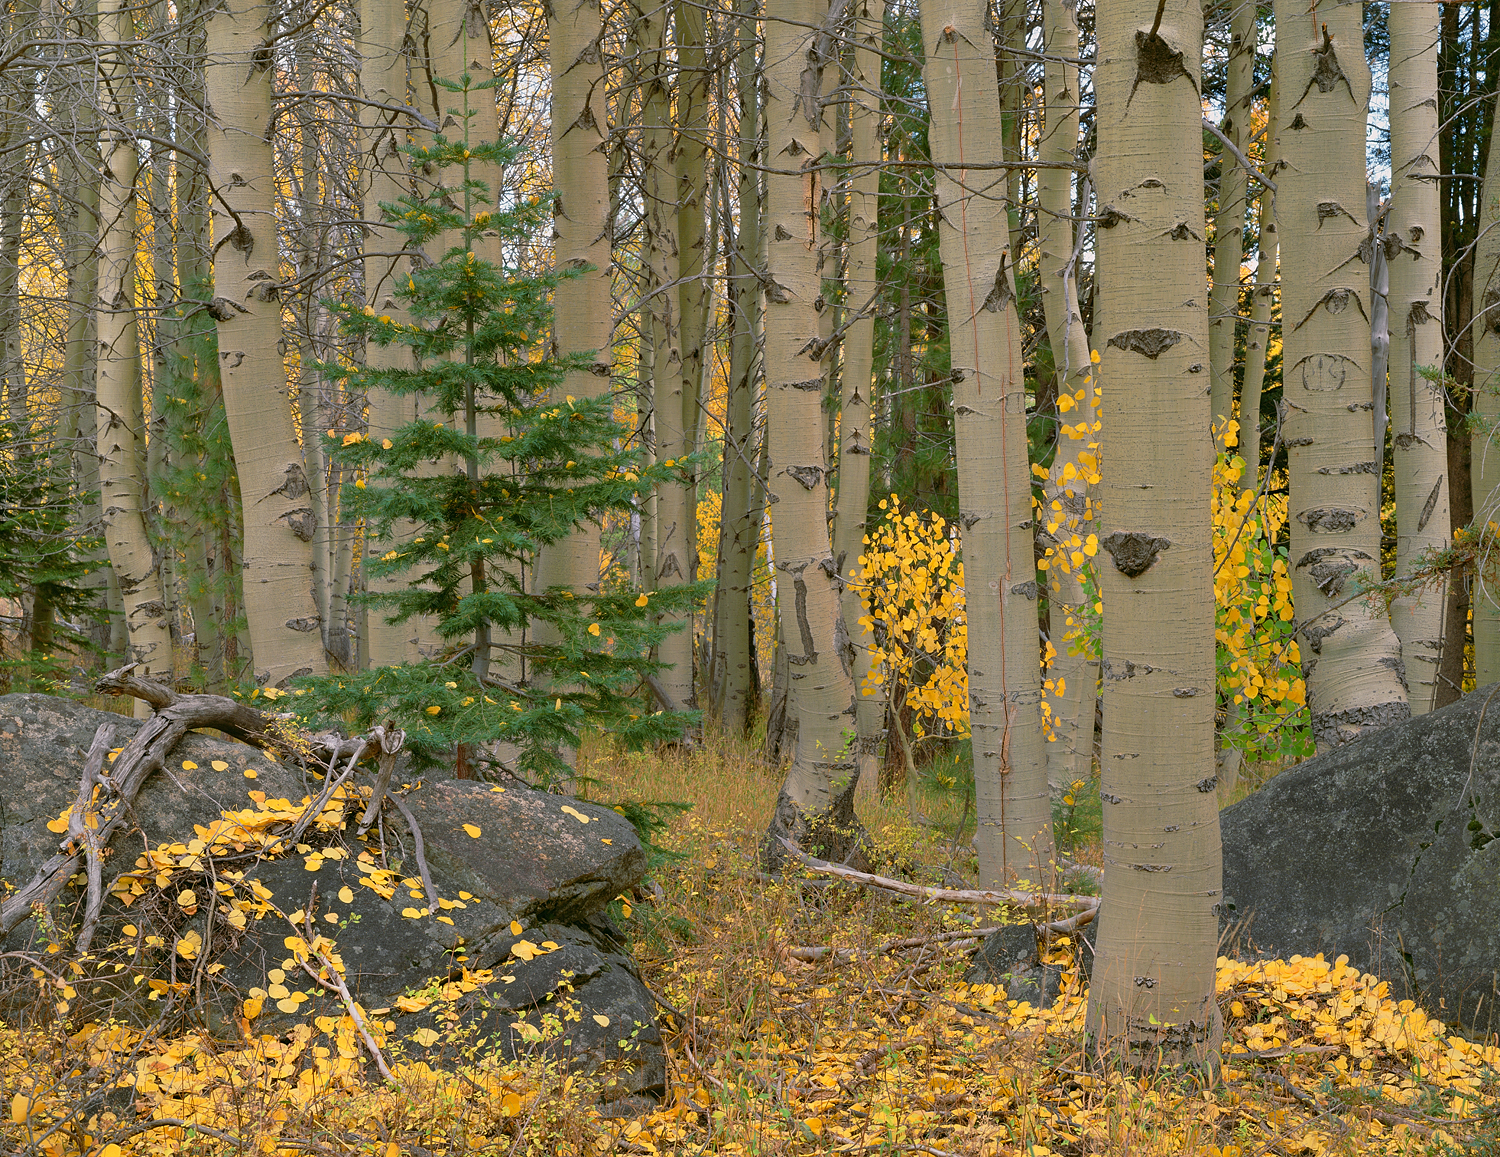 Aspen, Pine and Boulders